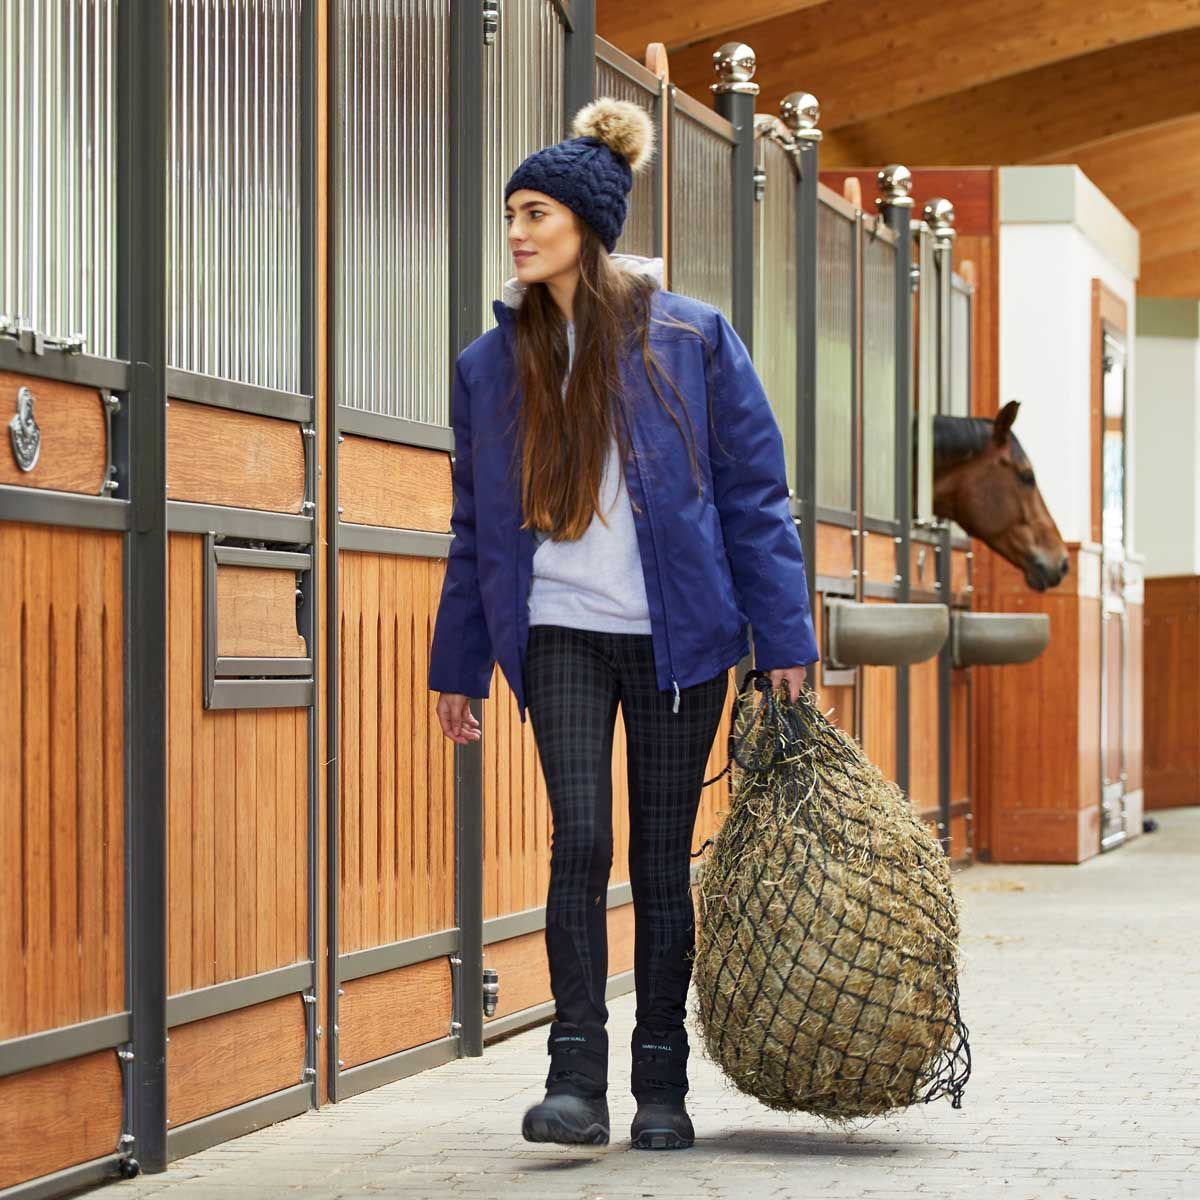 Girl carrying a hay bag while mucking out